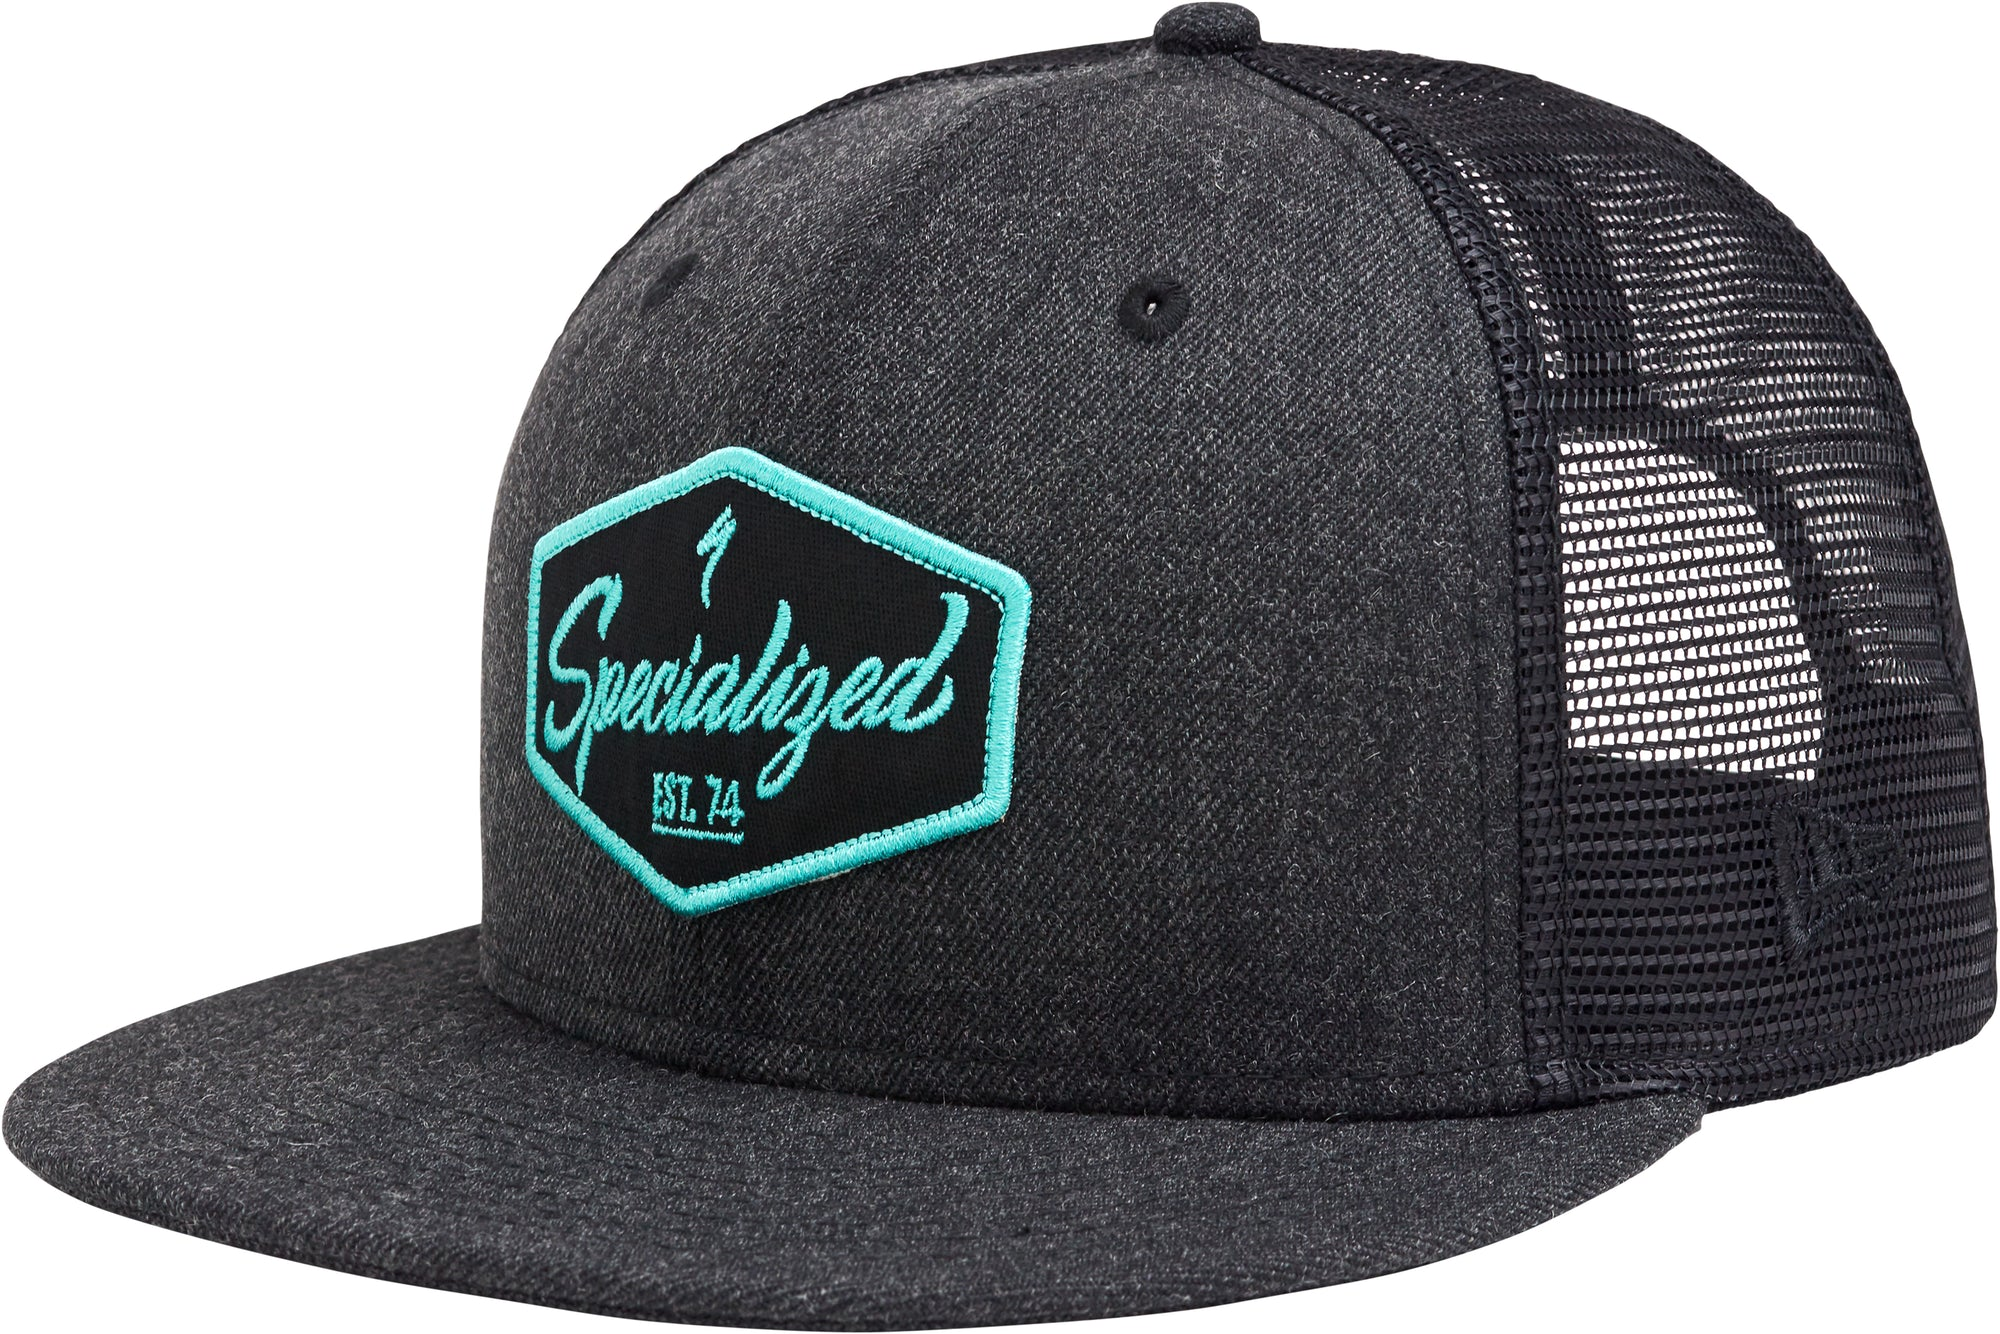 New Era 9Fifty Snapback Electro Hat